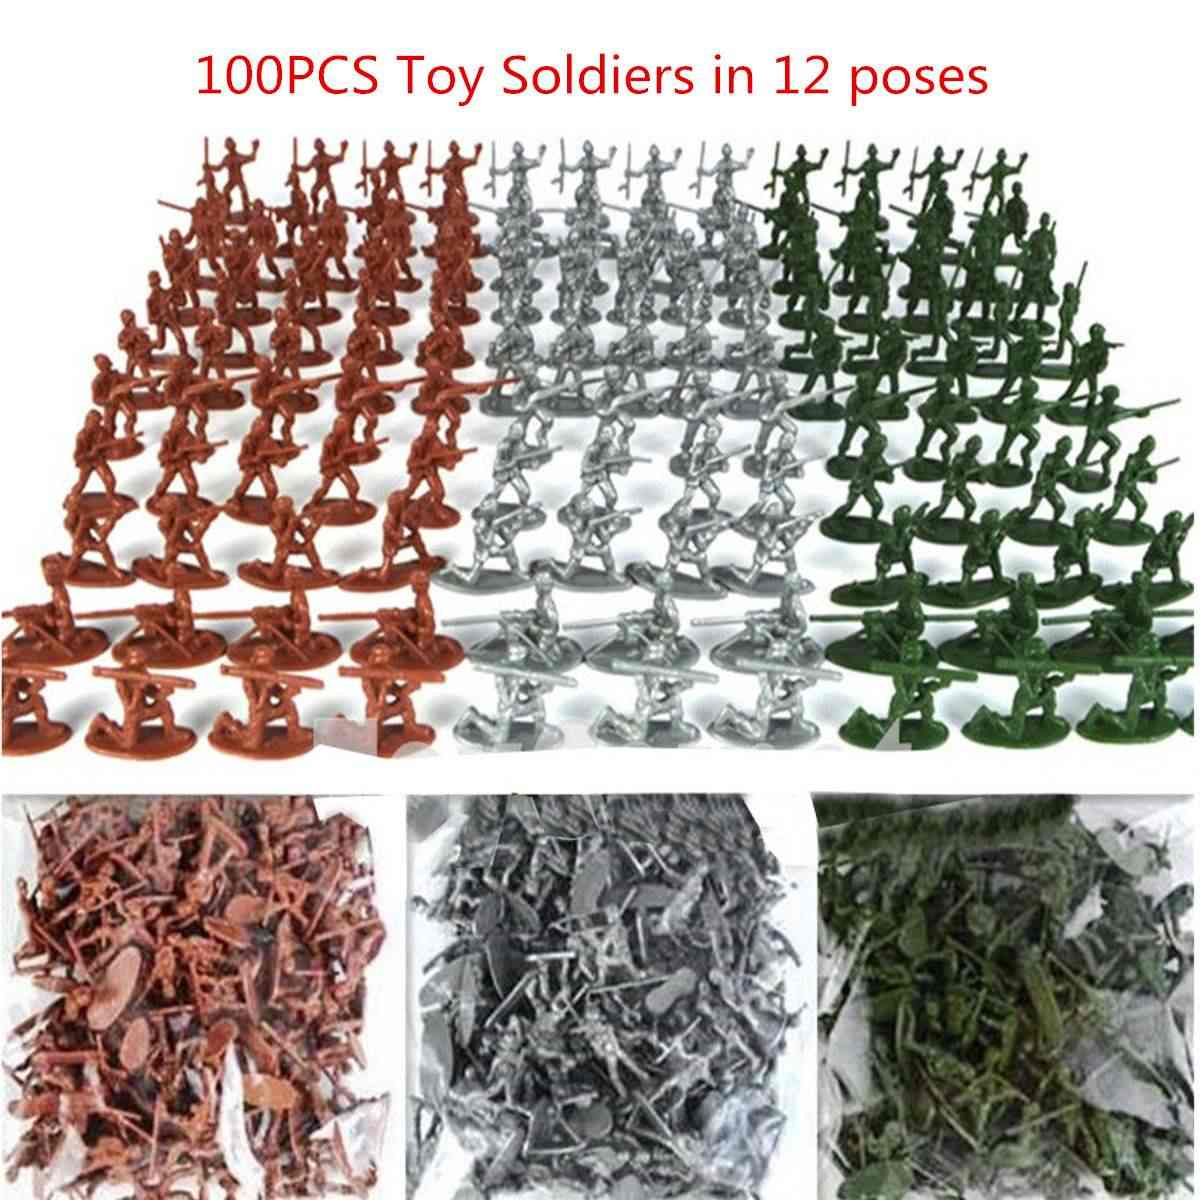 100pcs/set Military Plastic Toy s Army Men Figures 12 Poses Gift Toy Model Action Figure Toys For Children Boys